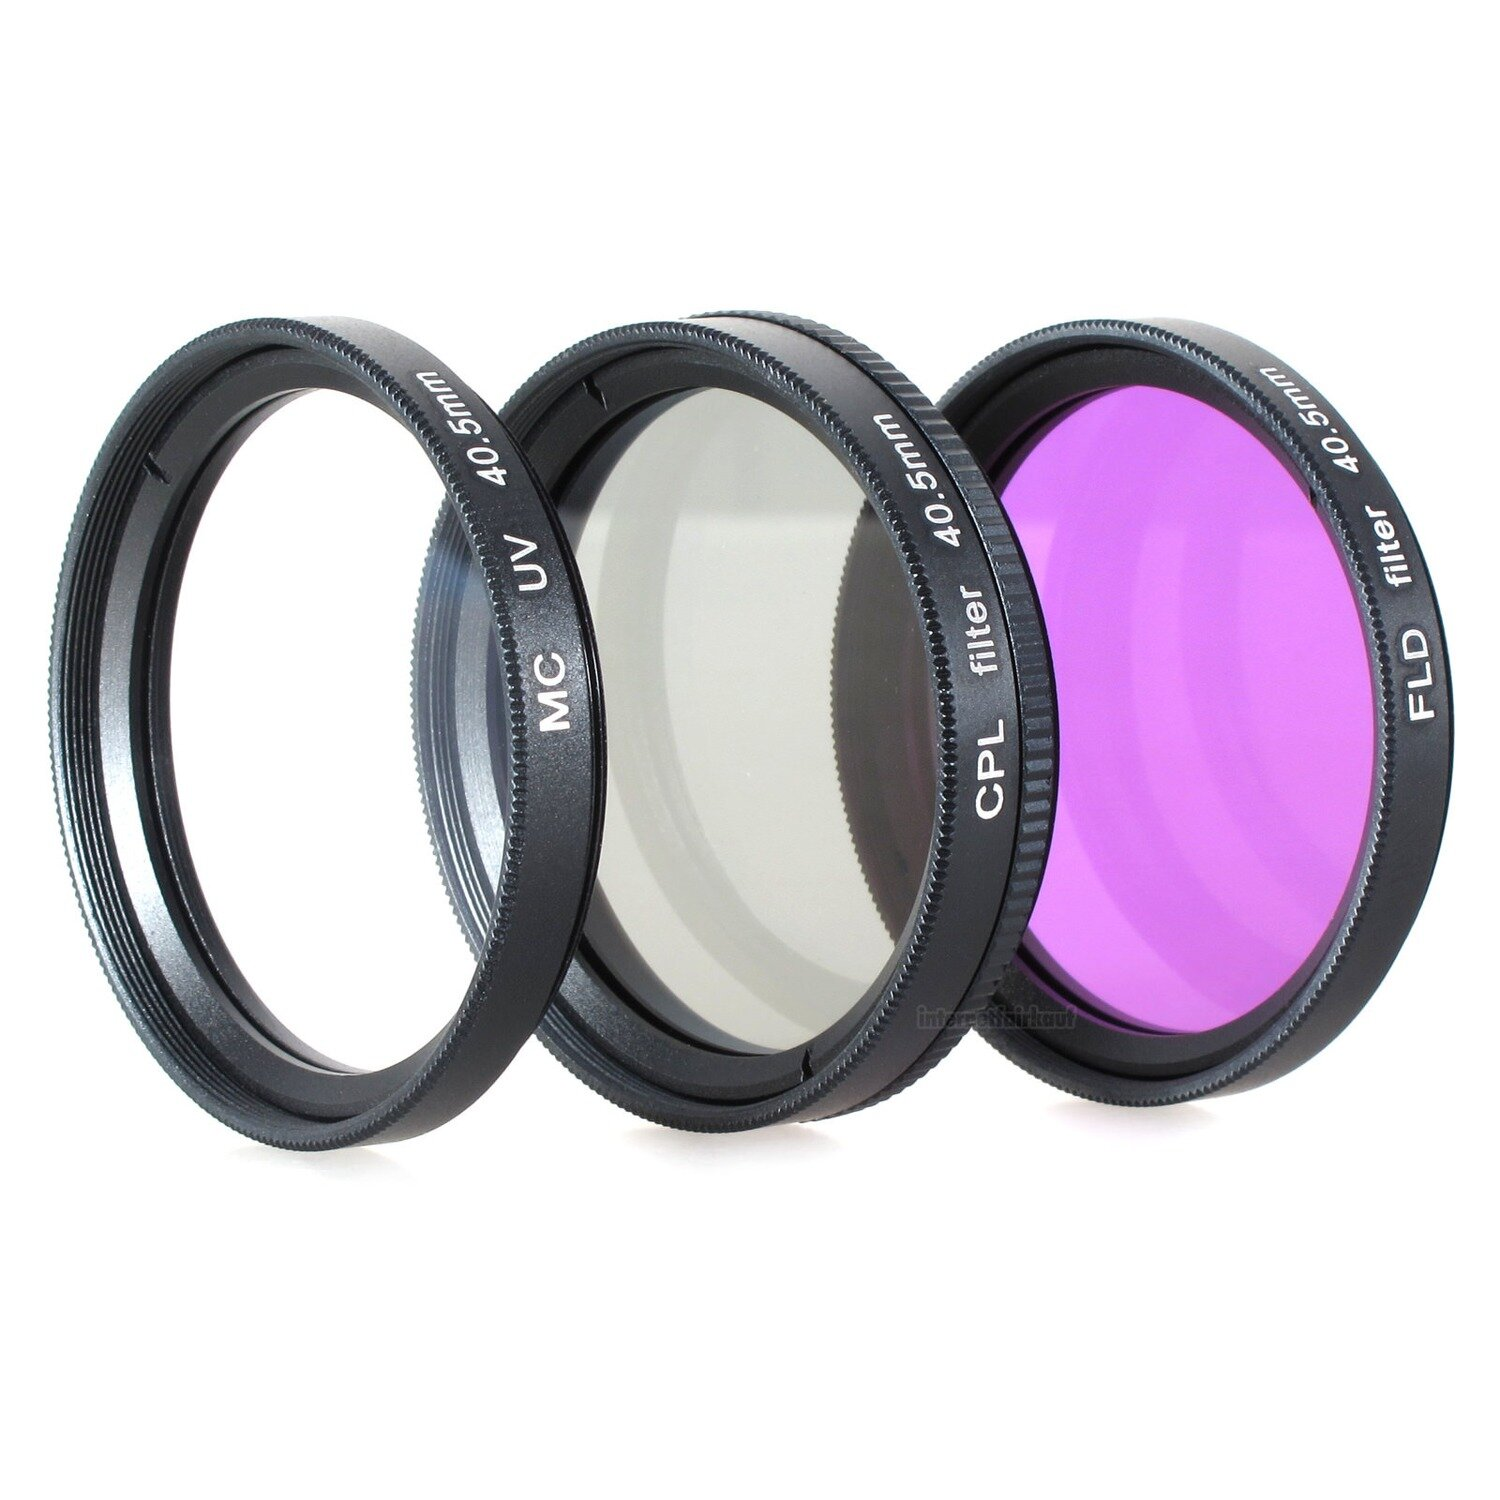 UV POL FD Filter Set passend für Nikon Coolpix P7800 P7700